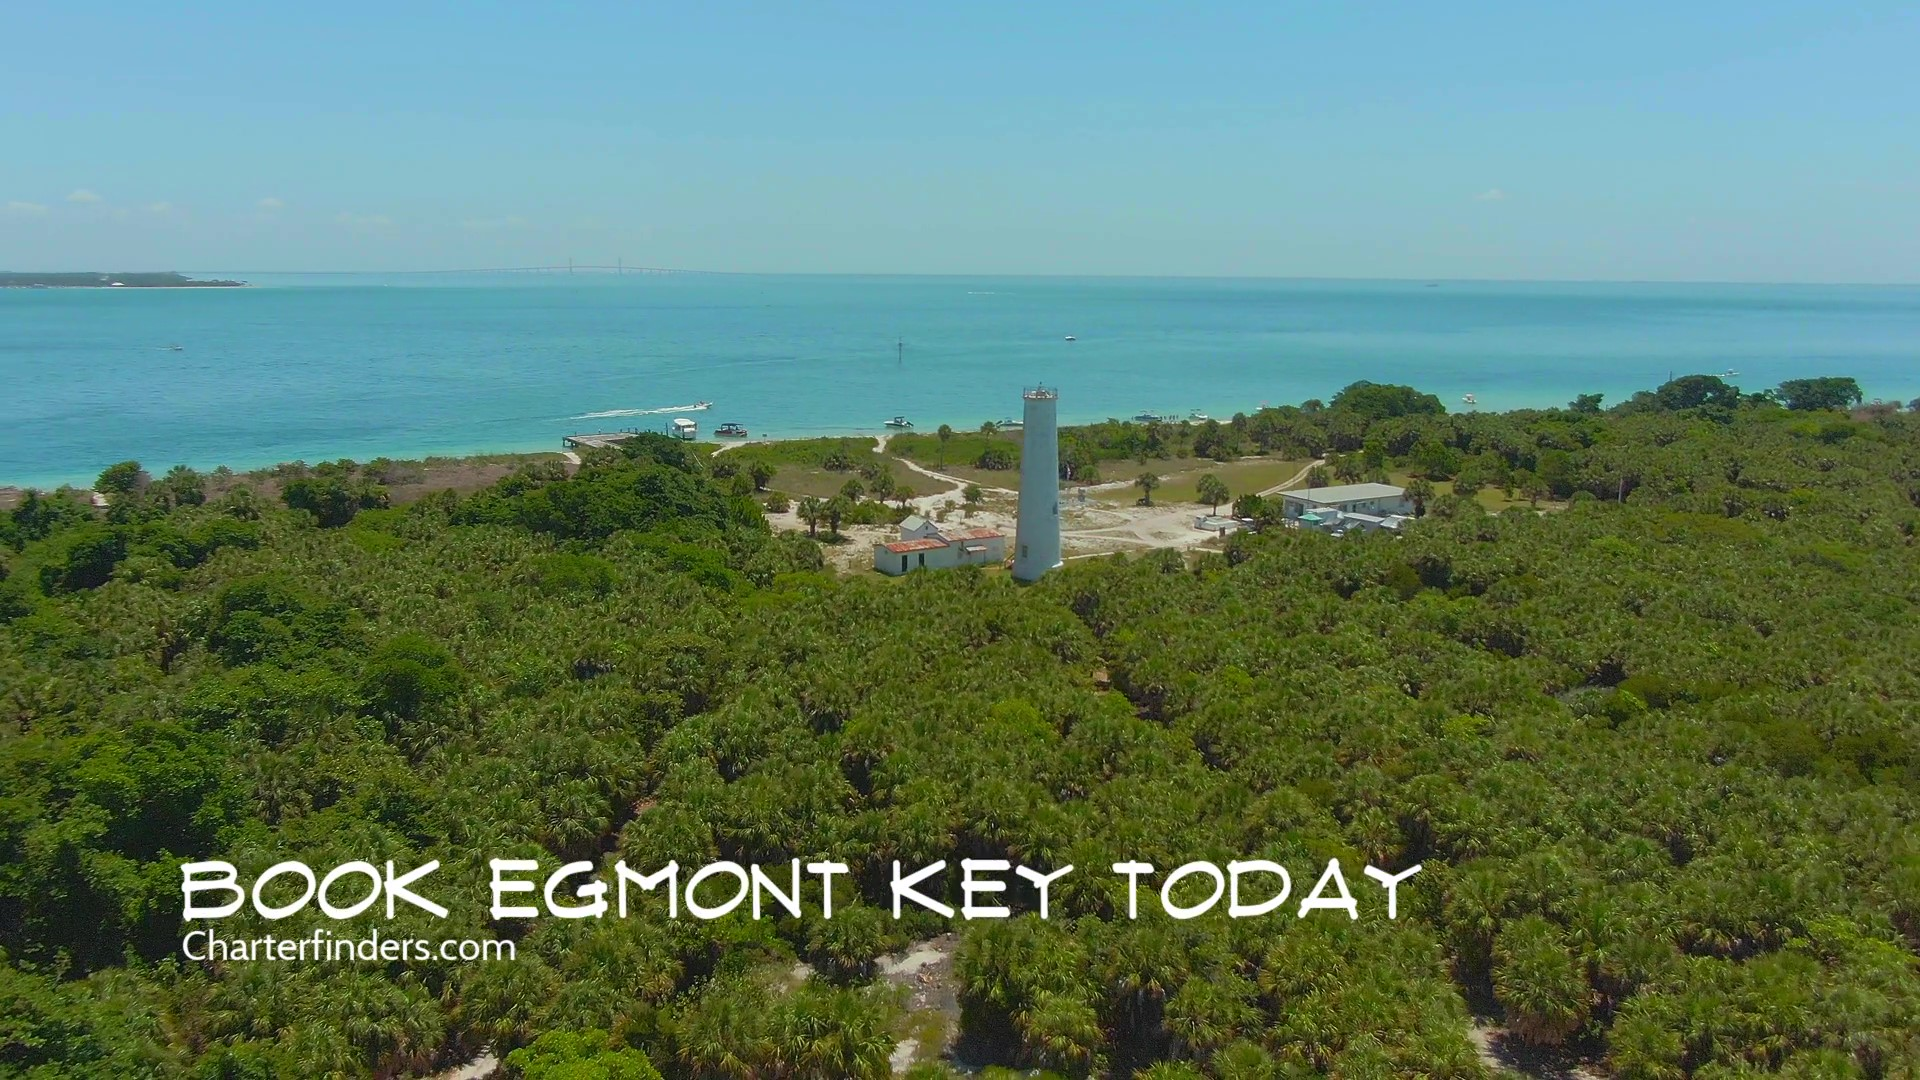 charterfinders egmont key (1080p)_Moment(2)